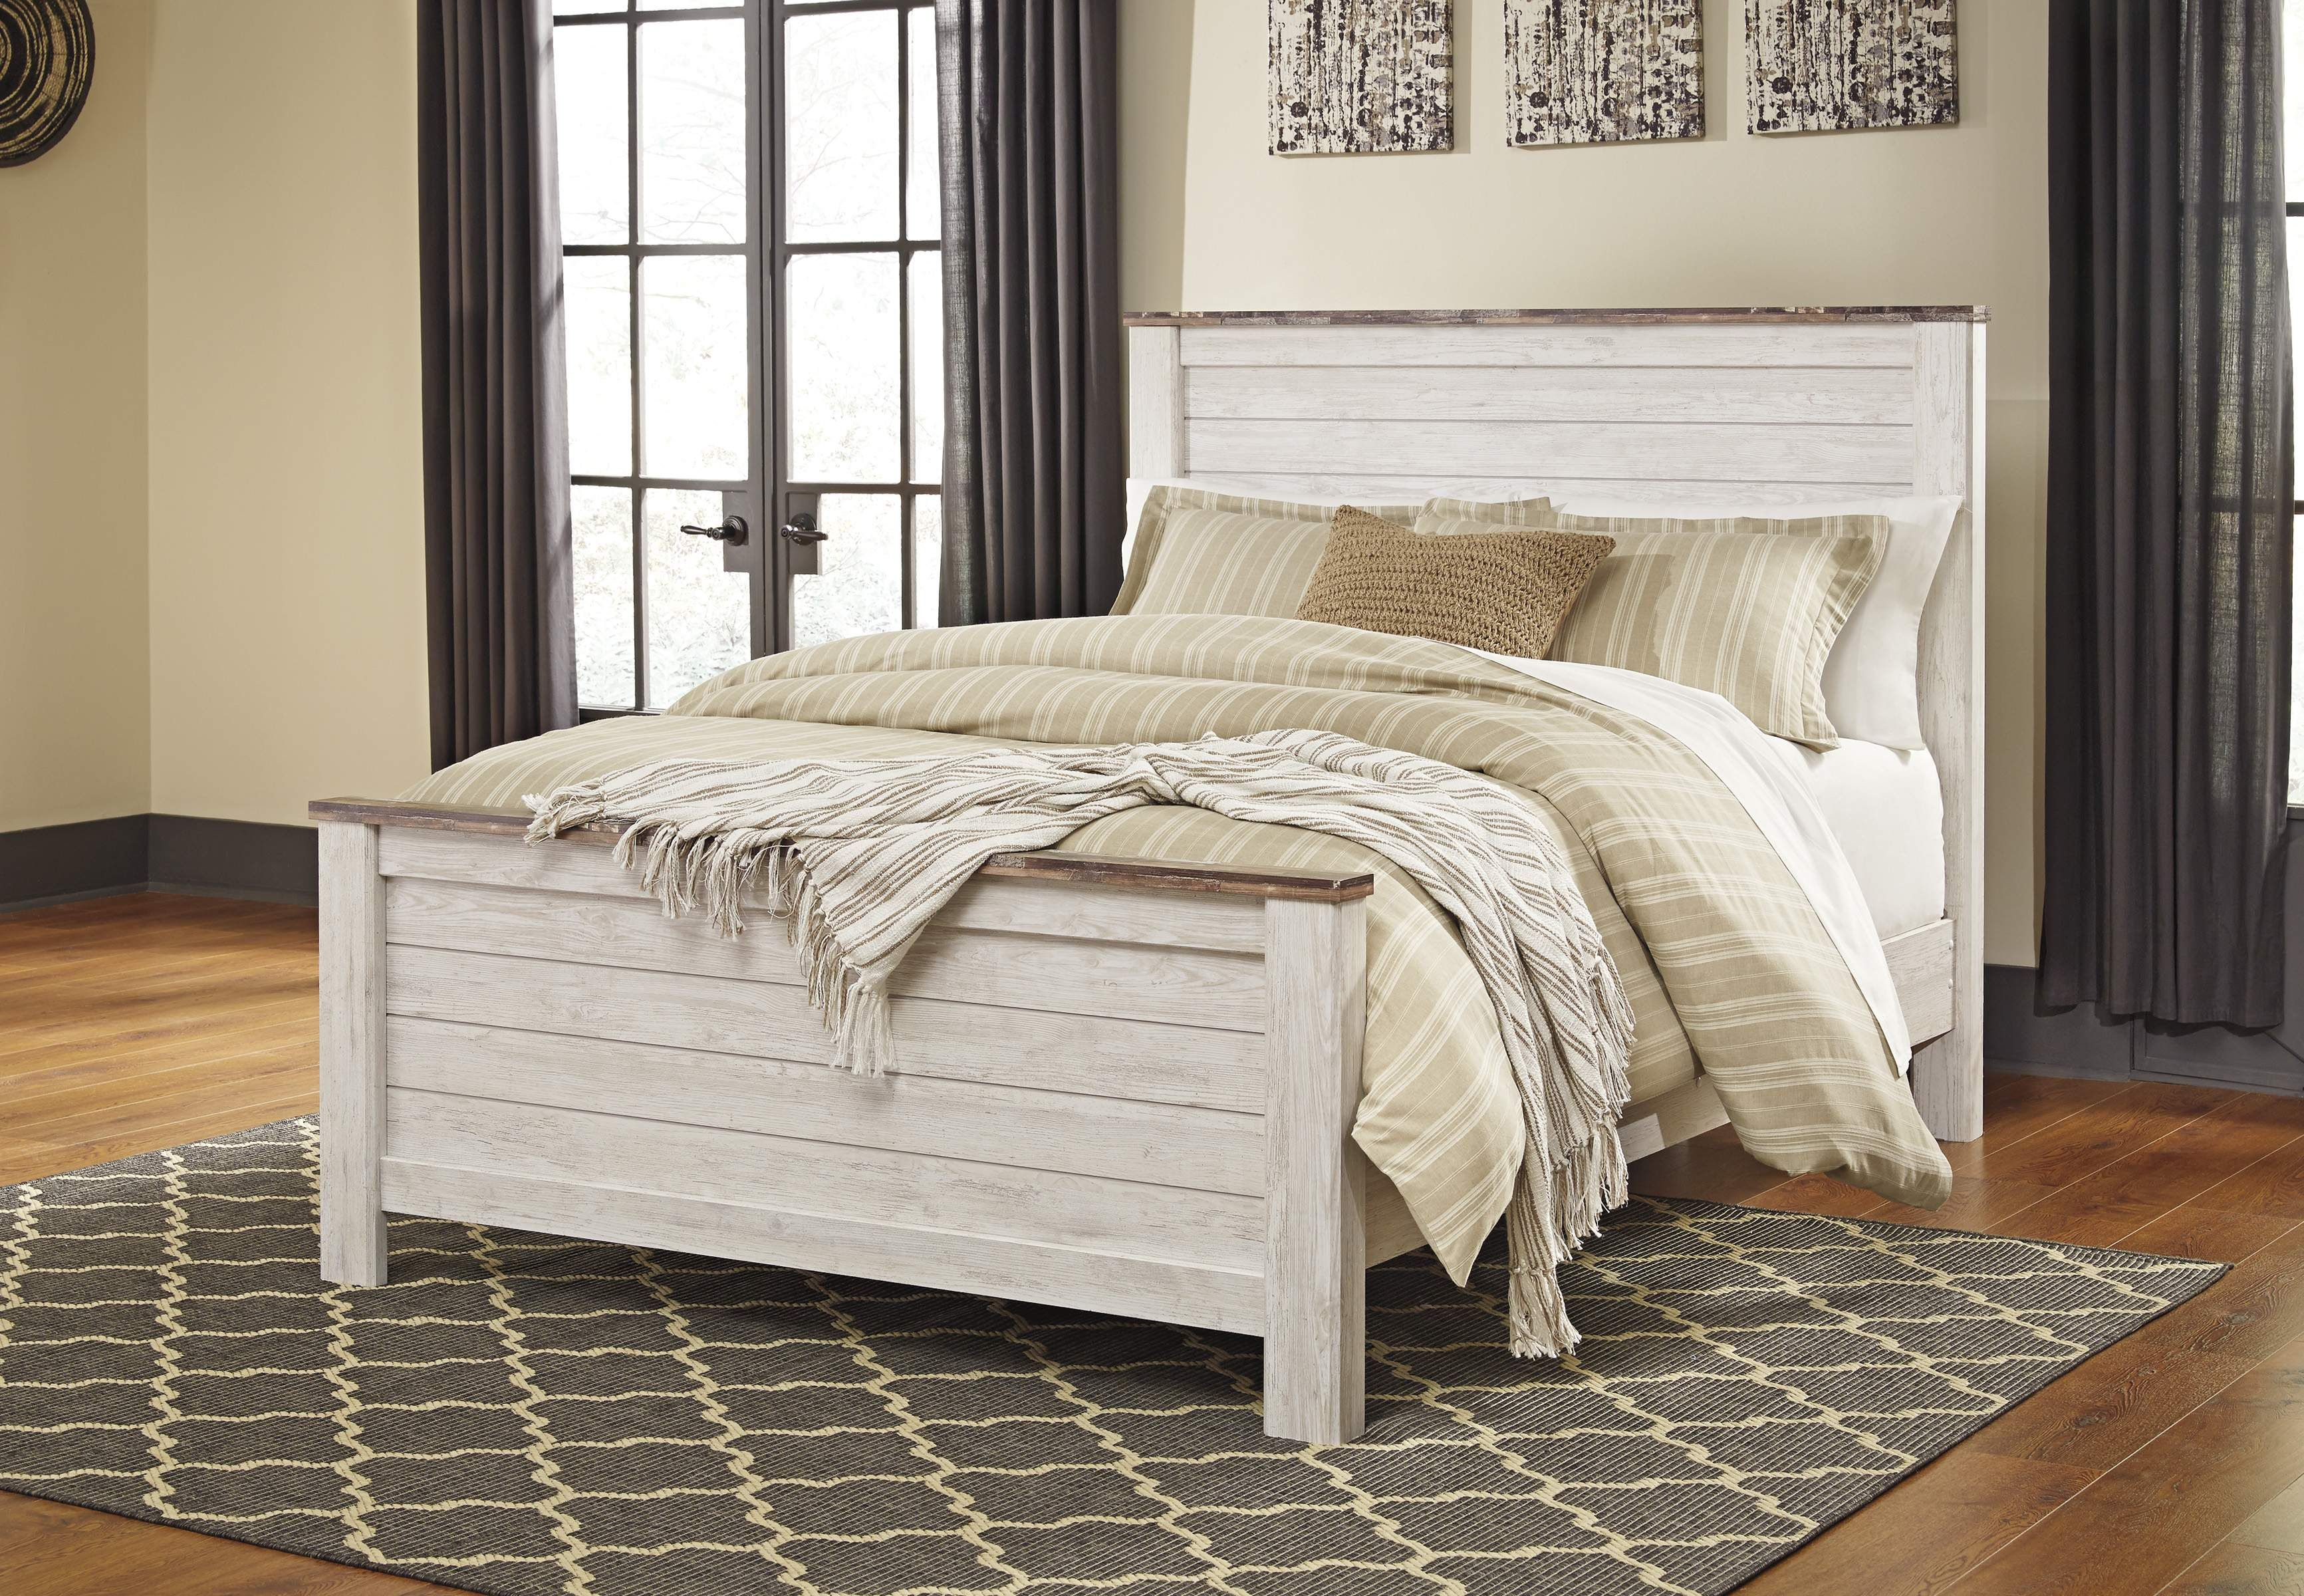 Willowton Queen Bed at Smith Home Furnishings Queen size